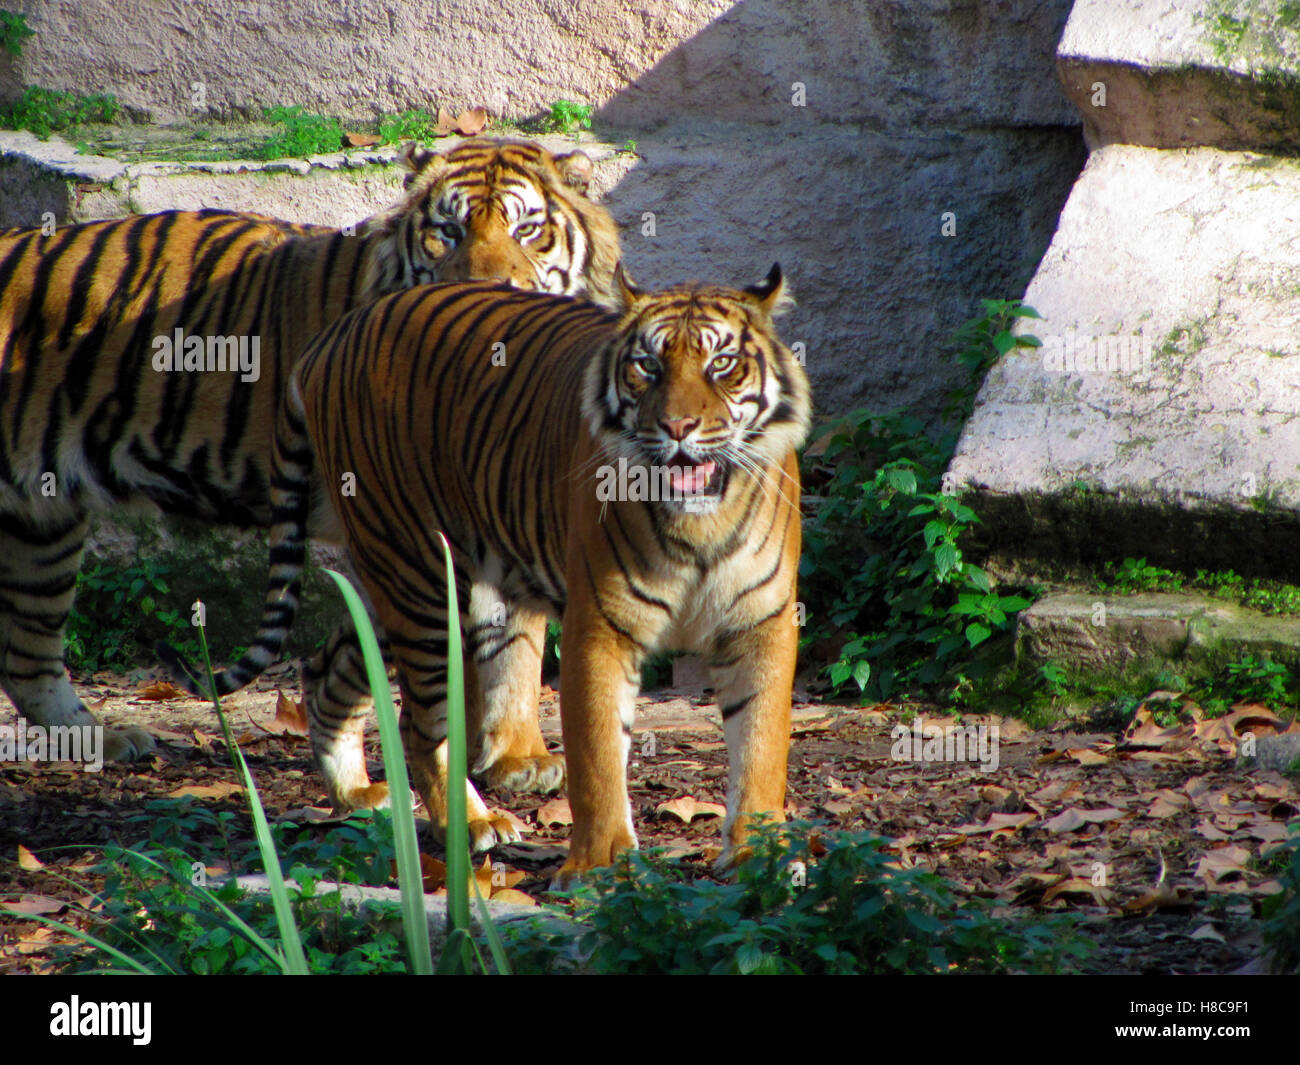 Tigers looking at camera. Barcelona Zoo, Spain - Stock Image